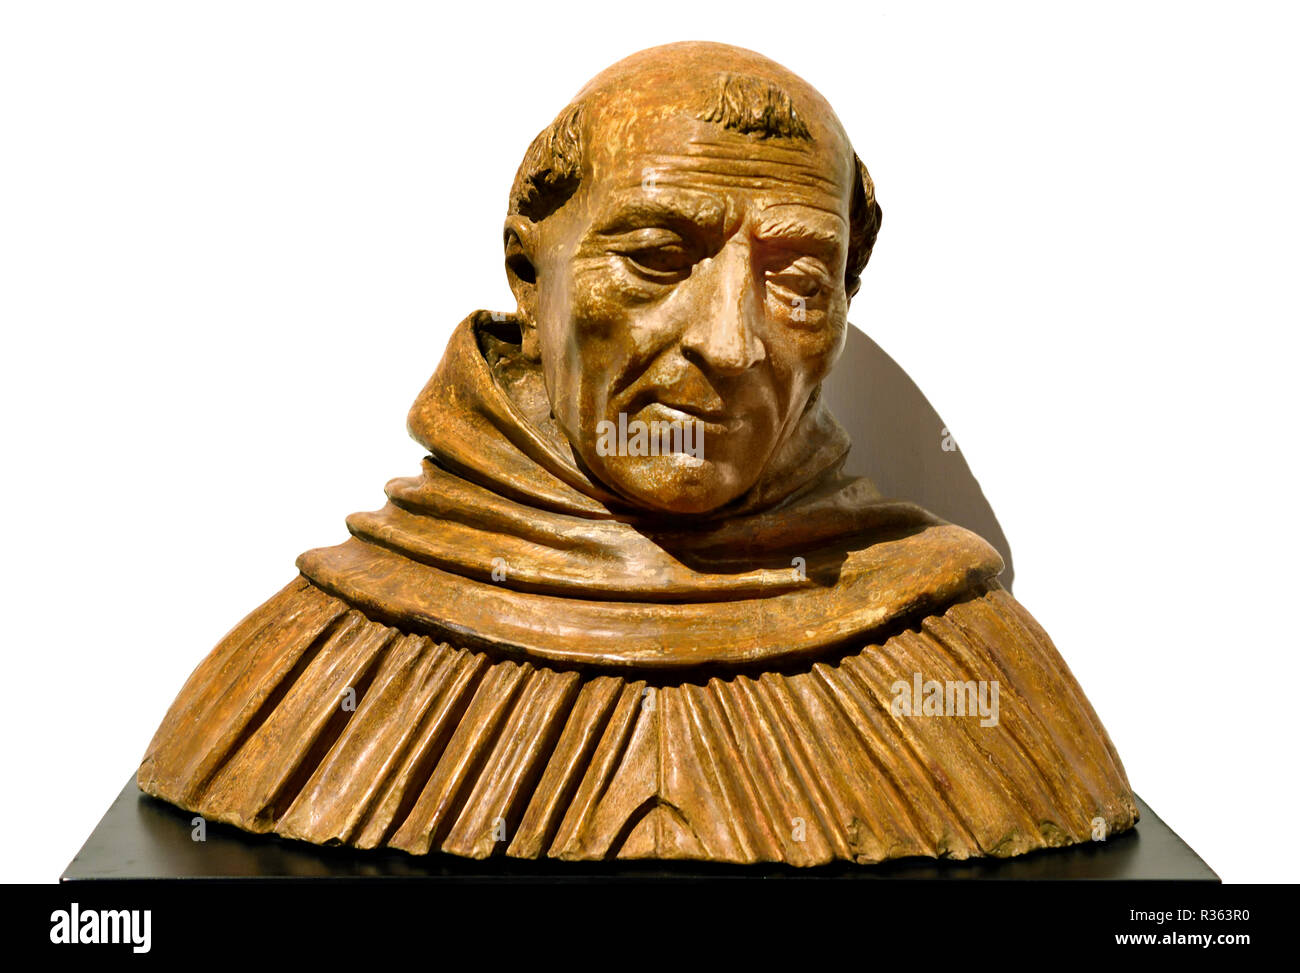 Sant Alberto Magno - Albertus Magnus 1493 by Vincenzo Onofri 1493-1524  Italy, Italian, Saint Albertus Magnus, ( 1193 – 1280), also known as Saint Albert the Great and Albert of Cologne, was a German Catholic Dominican friar and bishop. - Stock Image